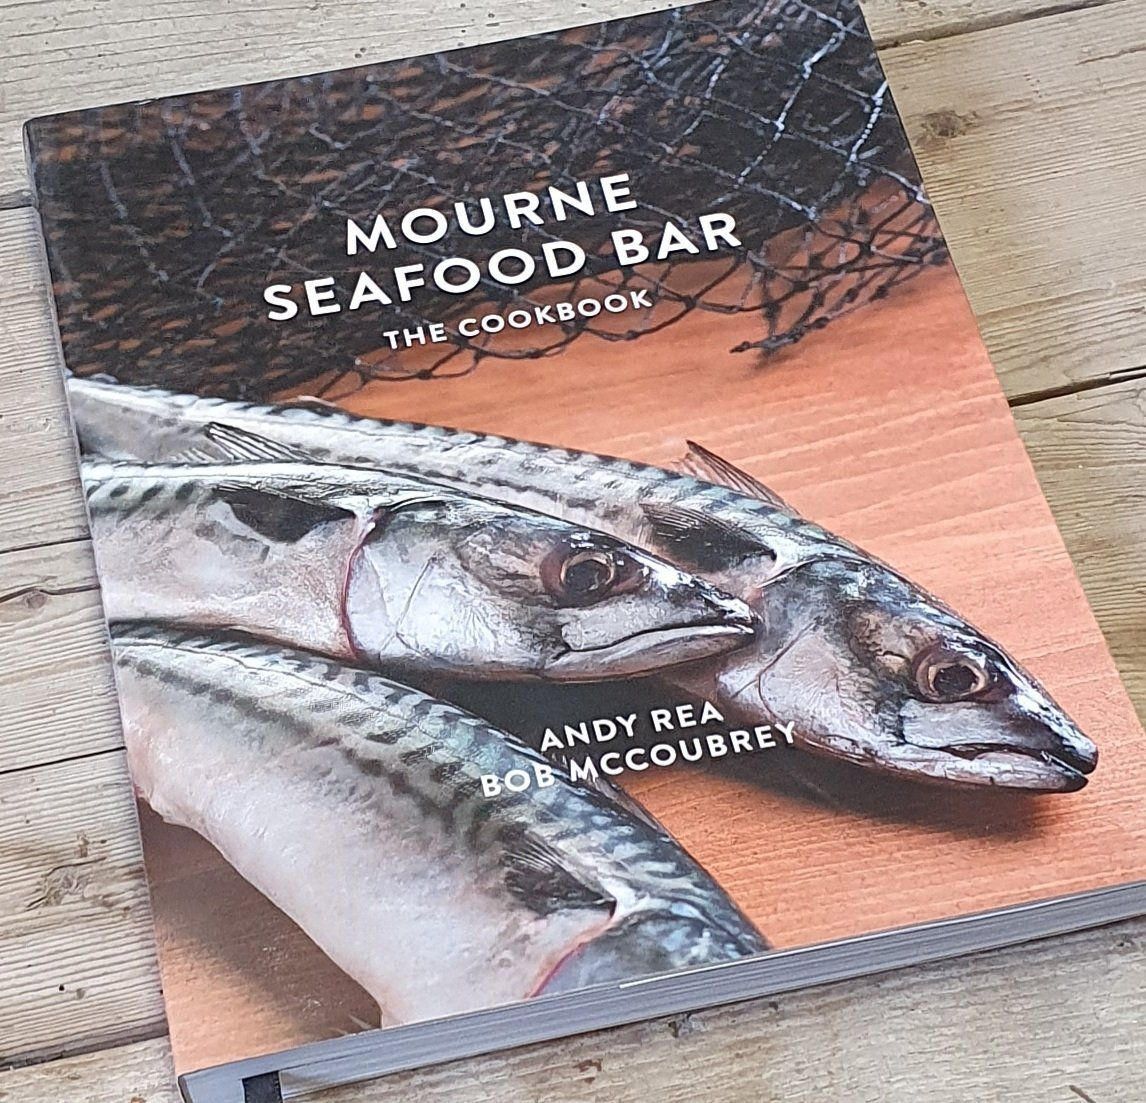 Mourne Seafood Bar, The Cookbook by Andy Rea, & Bob McCoubrey Accessories Broighter Gold Rapeseed Oil